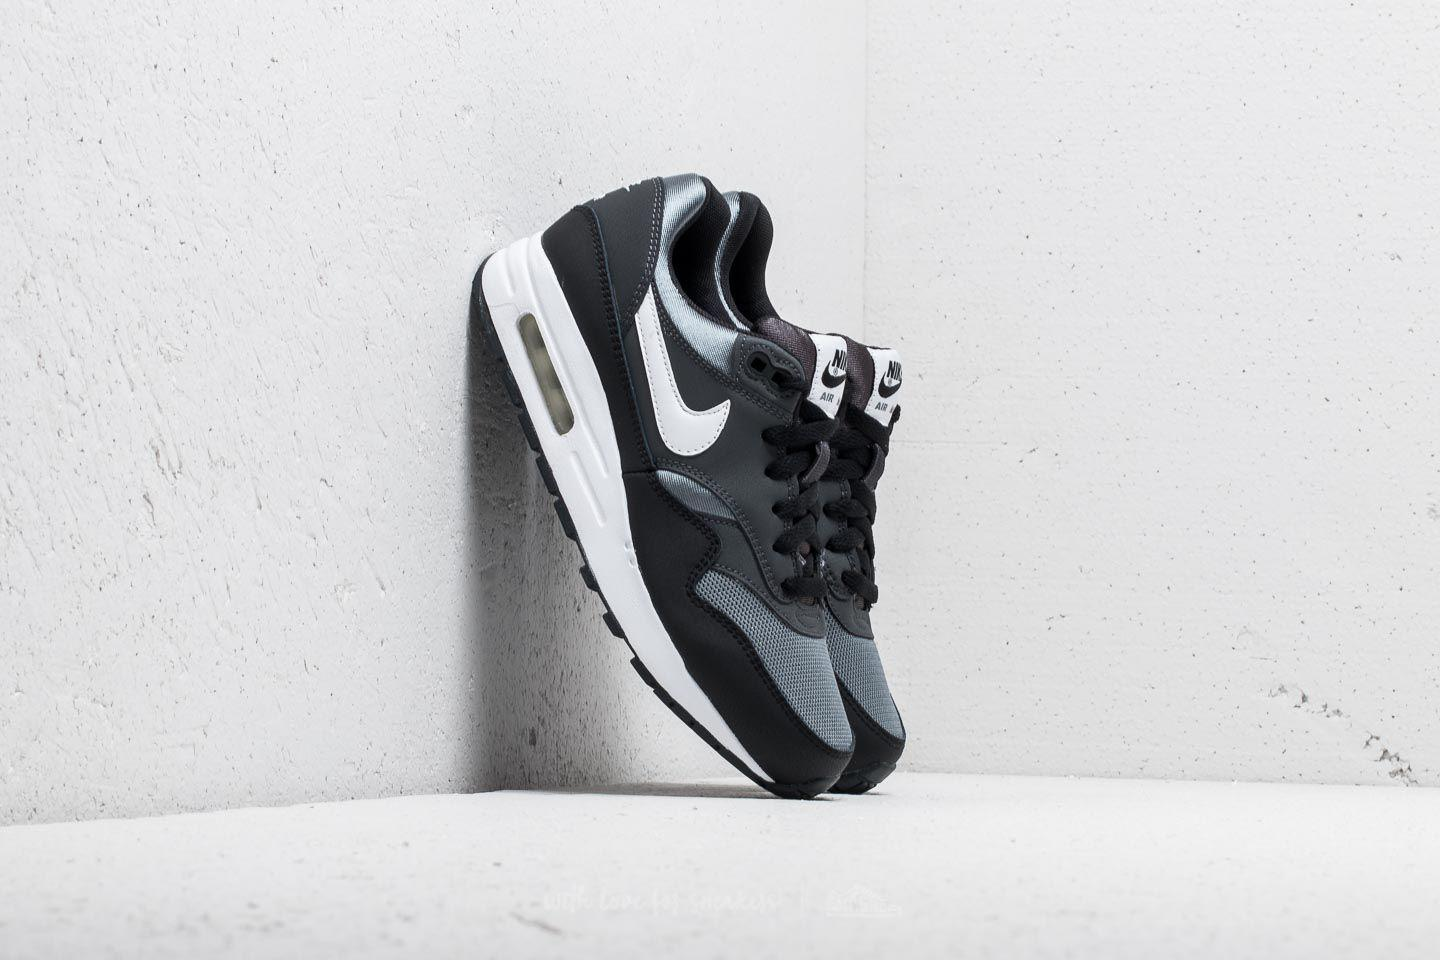 Lyst - Nike Air Max 1 (gs) Black  White-anthracite in Black e257e6028f